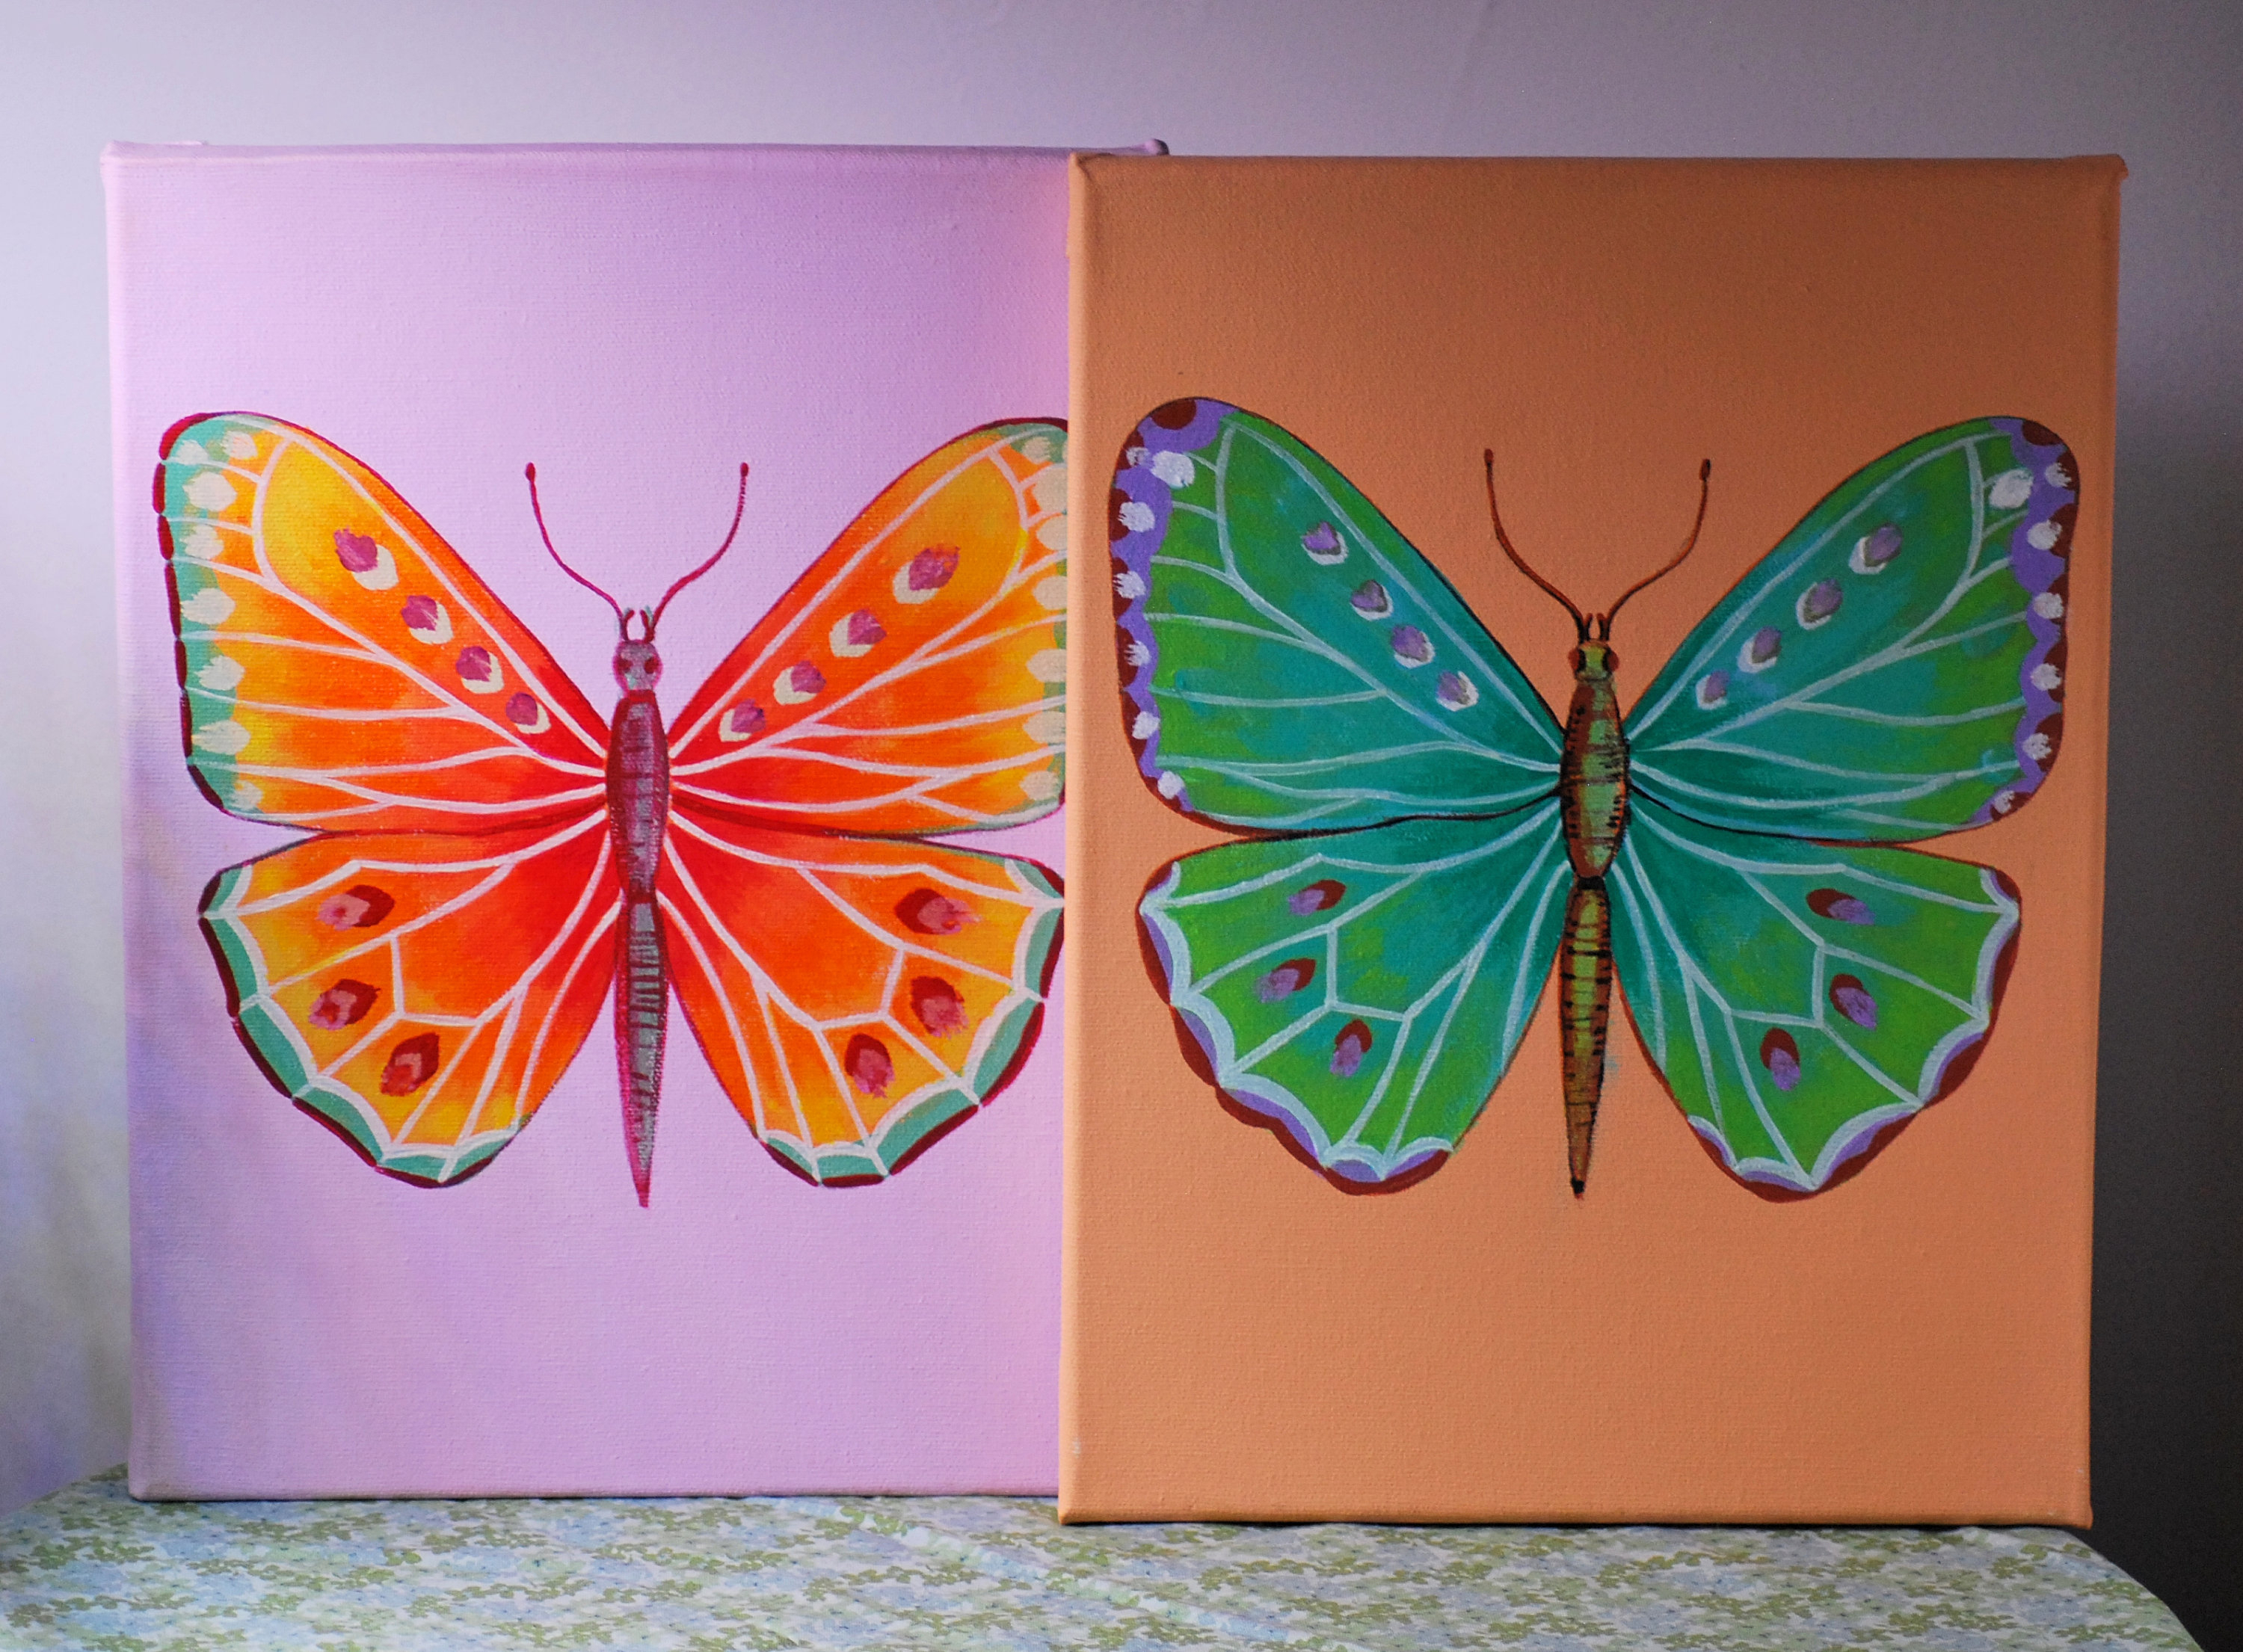 Original Multicolor Butterfly Painting Wall Art, Butterflies Bedroom Wall Decor, Butterflies Artwork Set Of 2 Canvas, Butterflies Set Canvas Inside 3 Piece Capri Butterfly Wall Decor Sets (View 21 of 30)